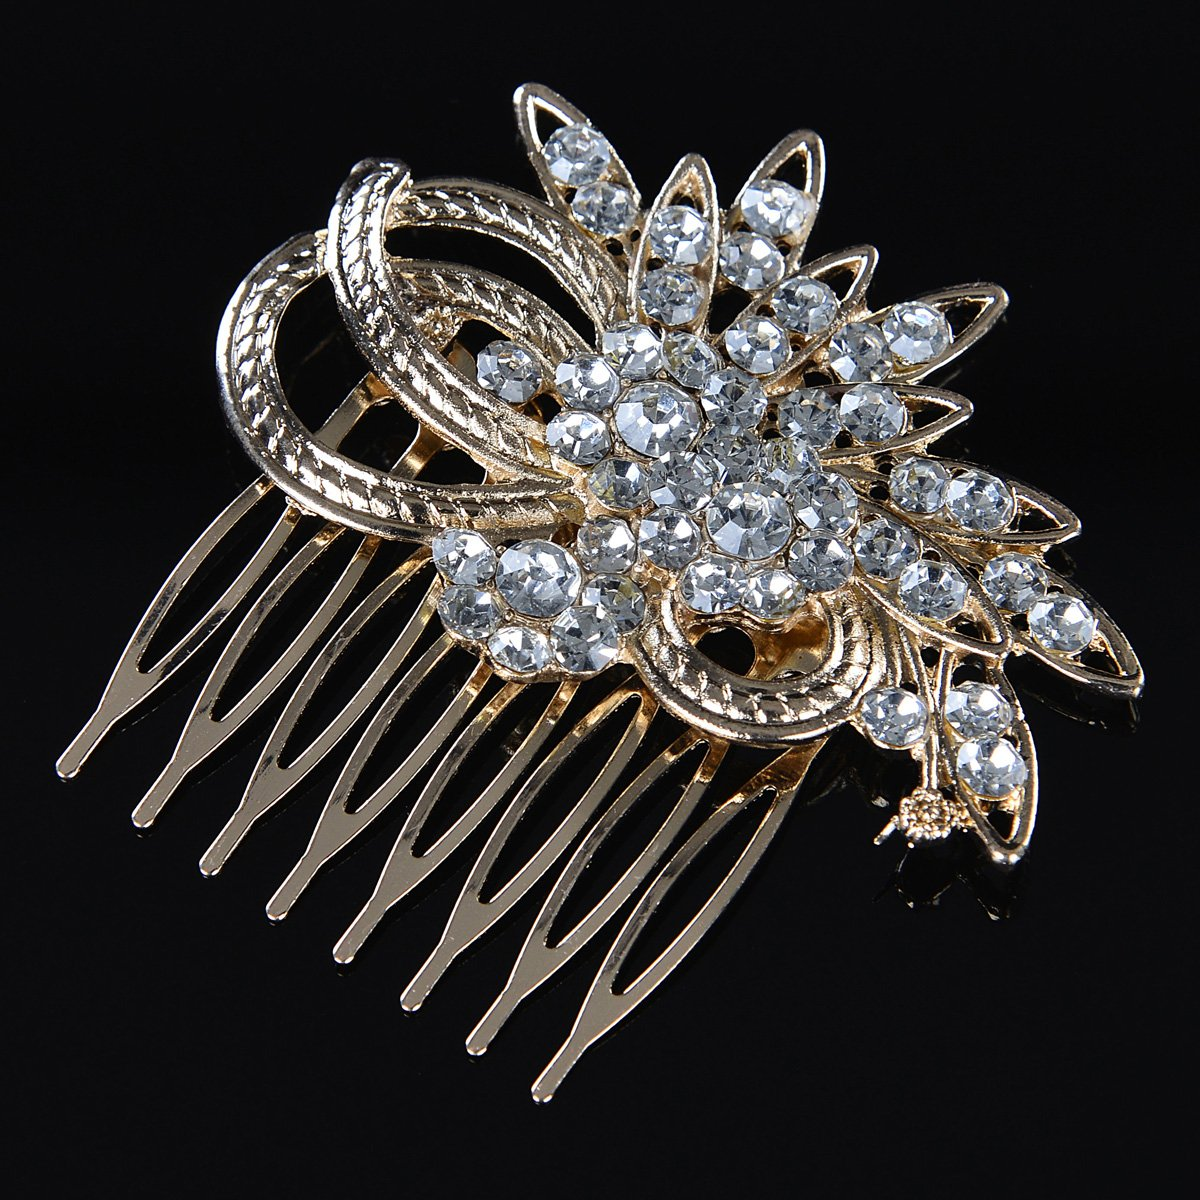 Remedios Vintage Crystal Bridal Hair Comb Wedding Hair Accessory, Light Gold 2